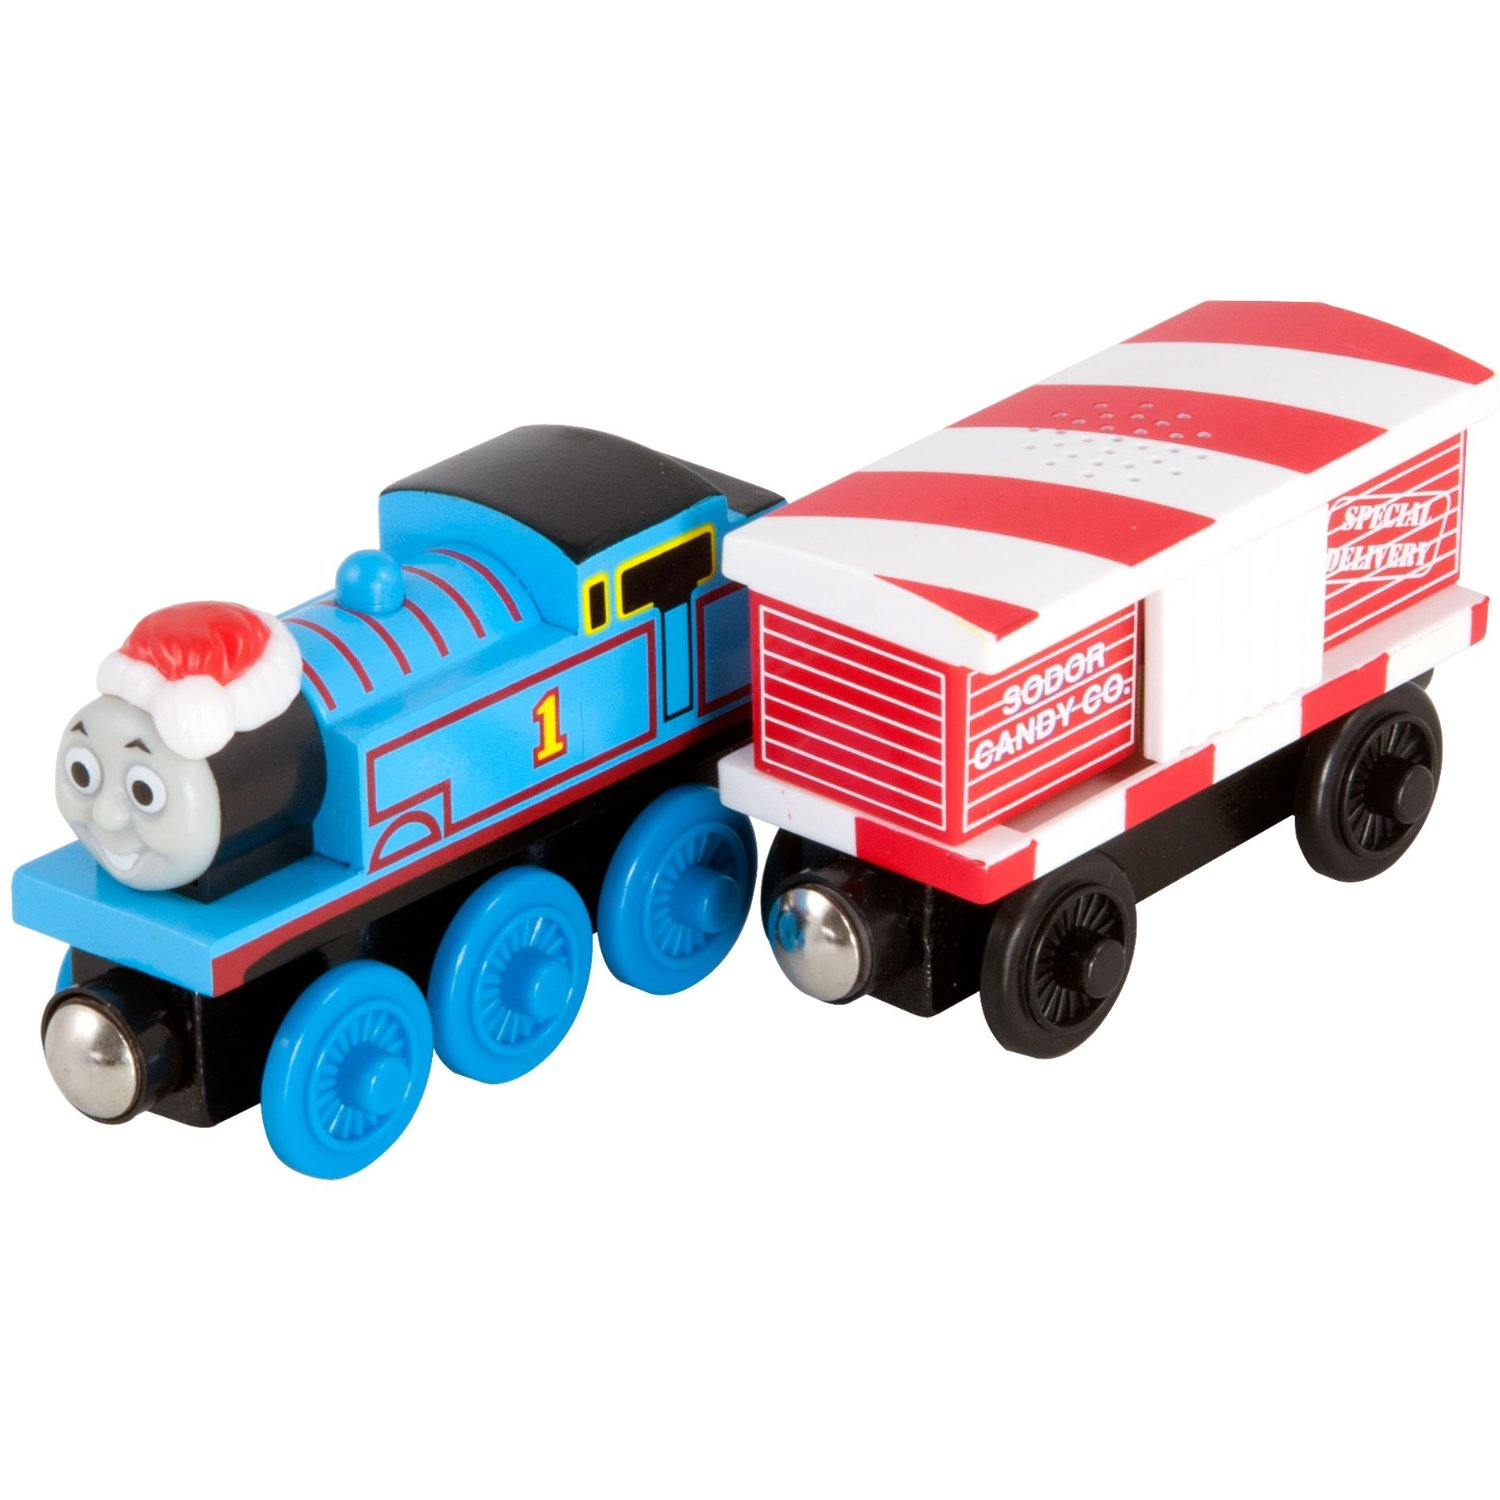 Train Gifts: Thomas the Tank Engine, Chuggington and More